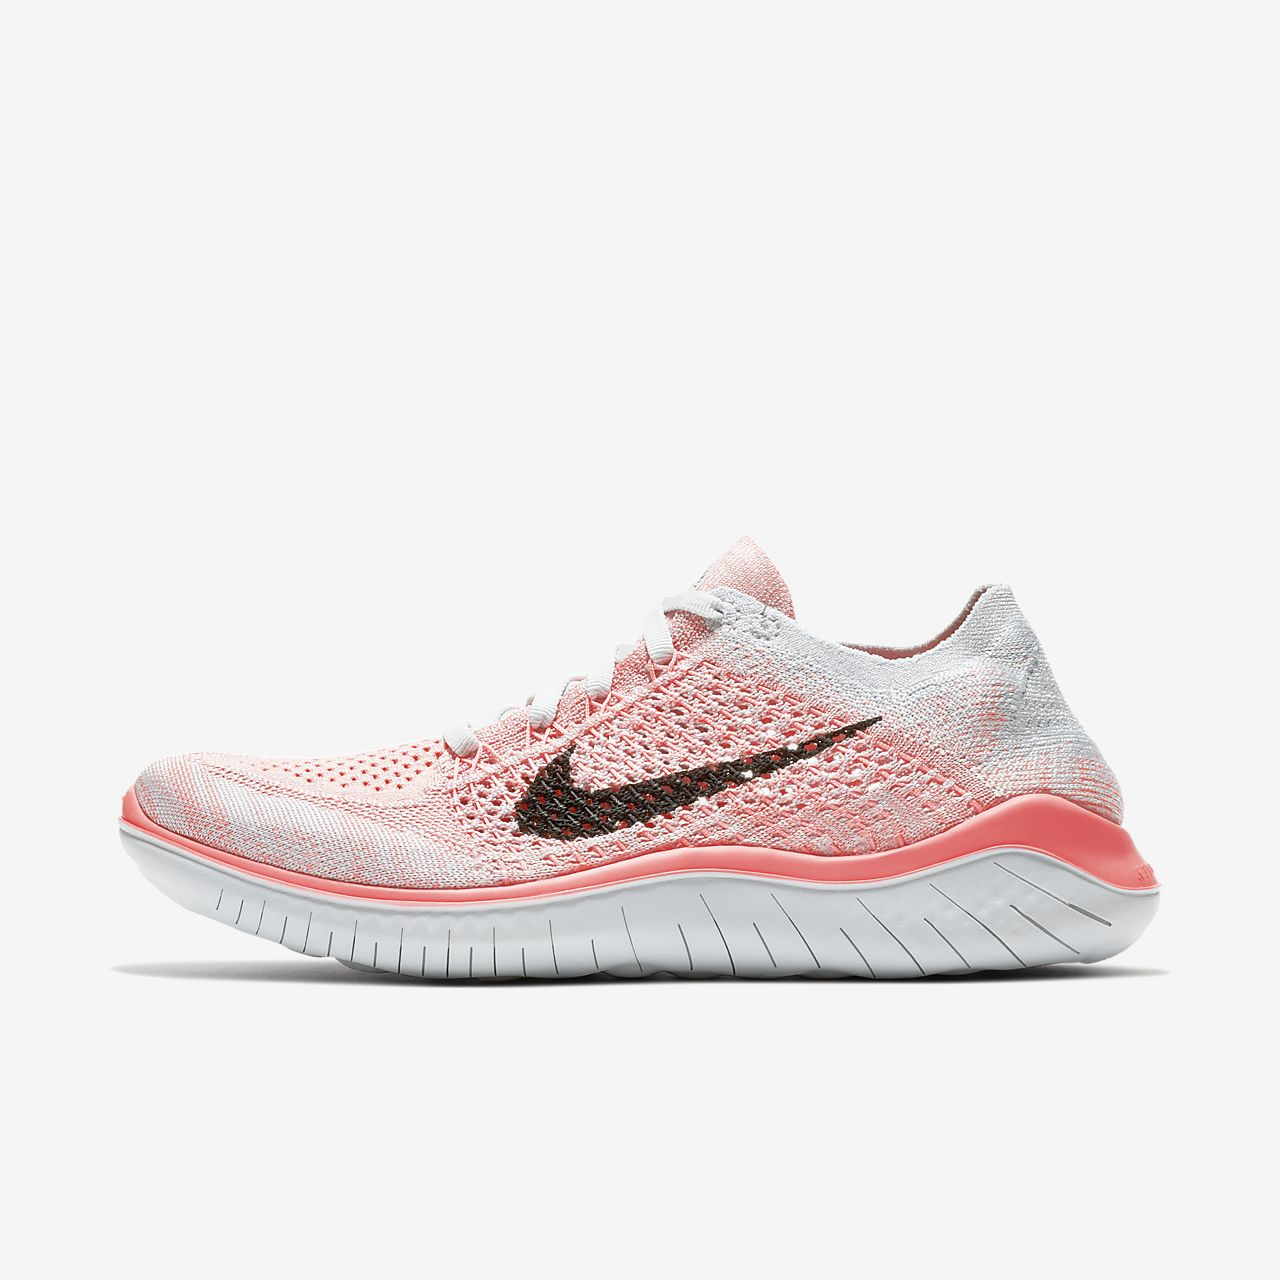 Nike Women's Free RN FLYKNIT 2018 (942839-800) Running Shoes Trainers Free Run